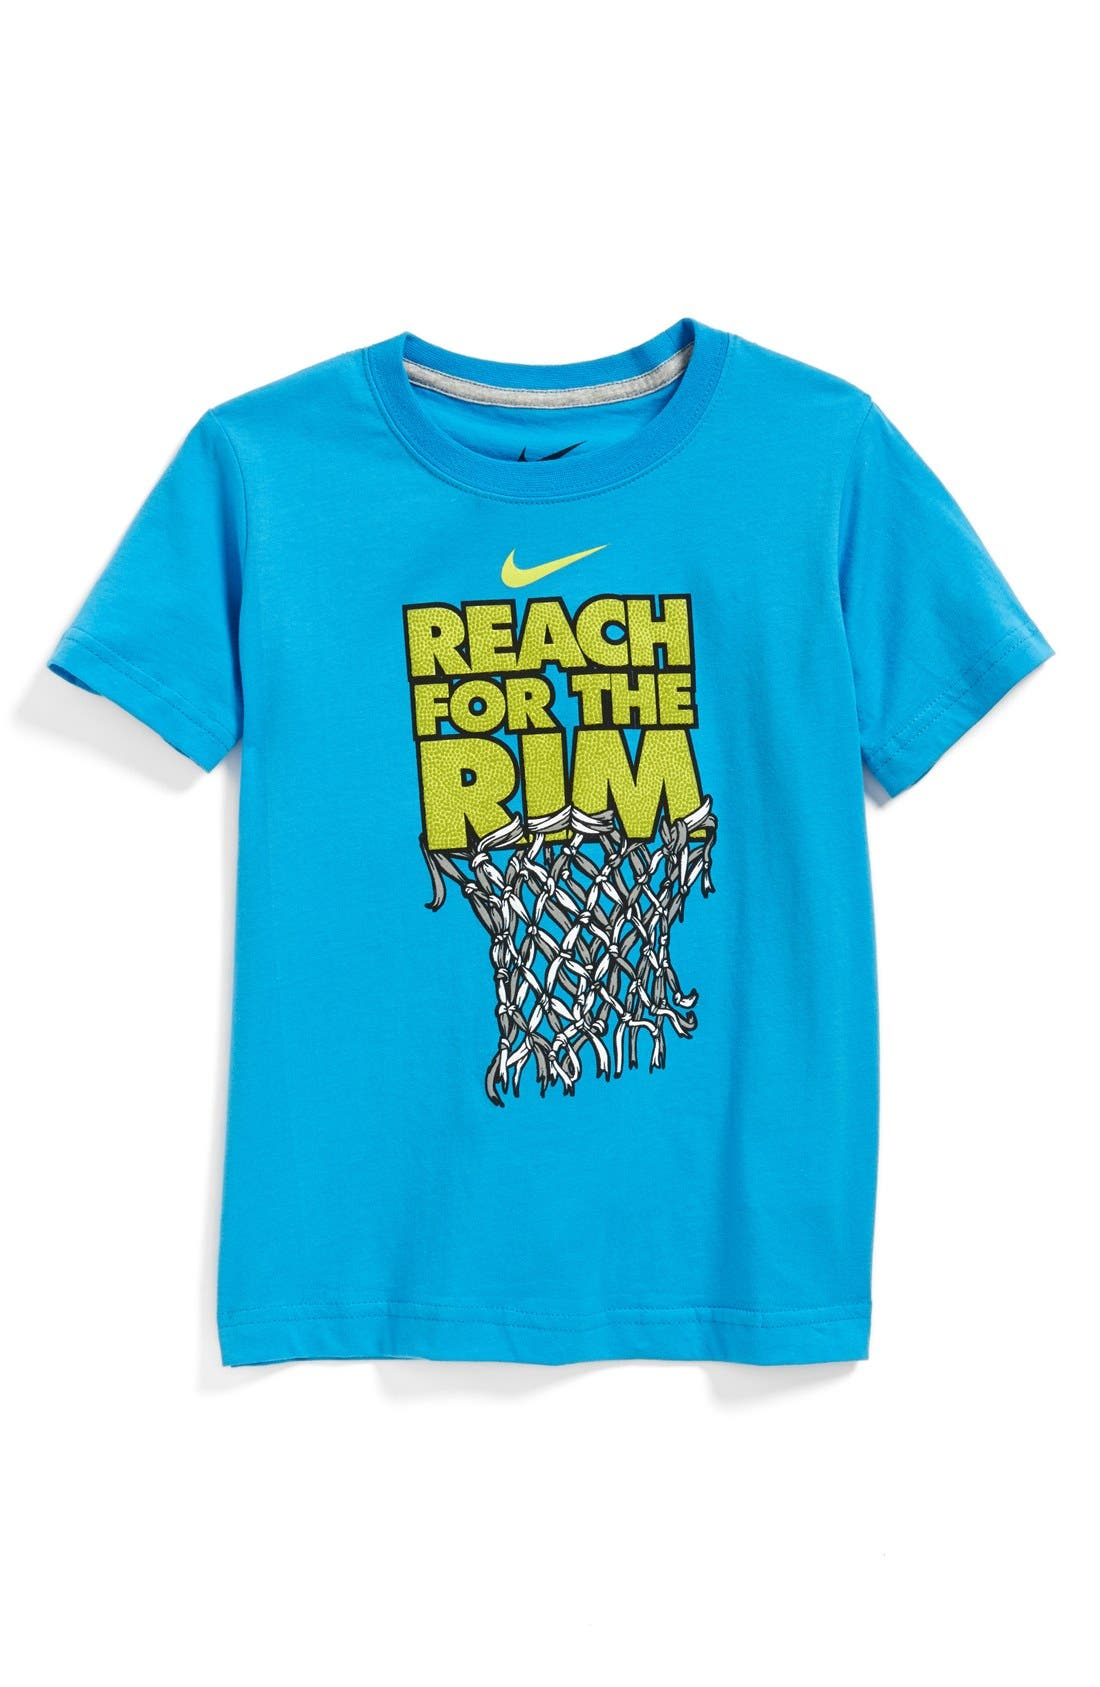 Alternate Image 1 Selected - Nike 'Reach for the Rim' Graphic T-Shirt (Little Boys)